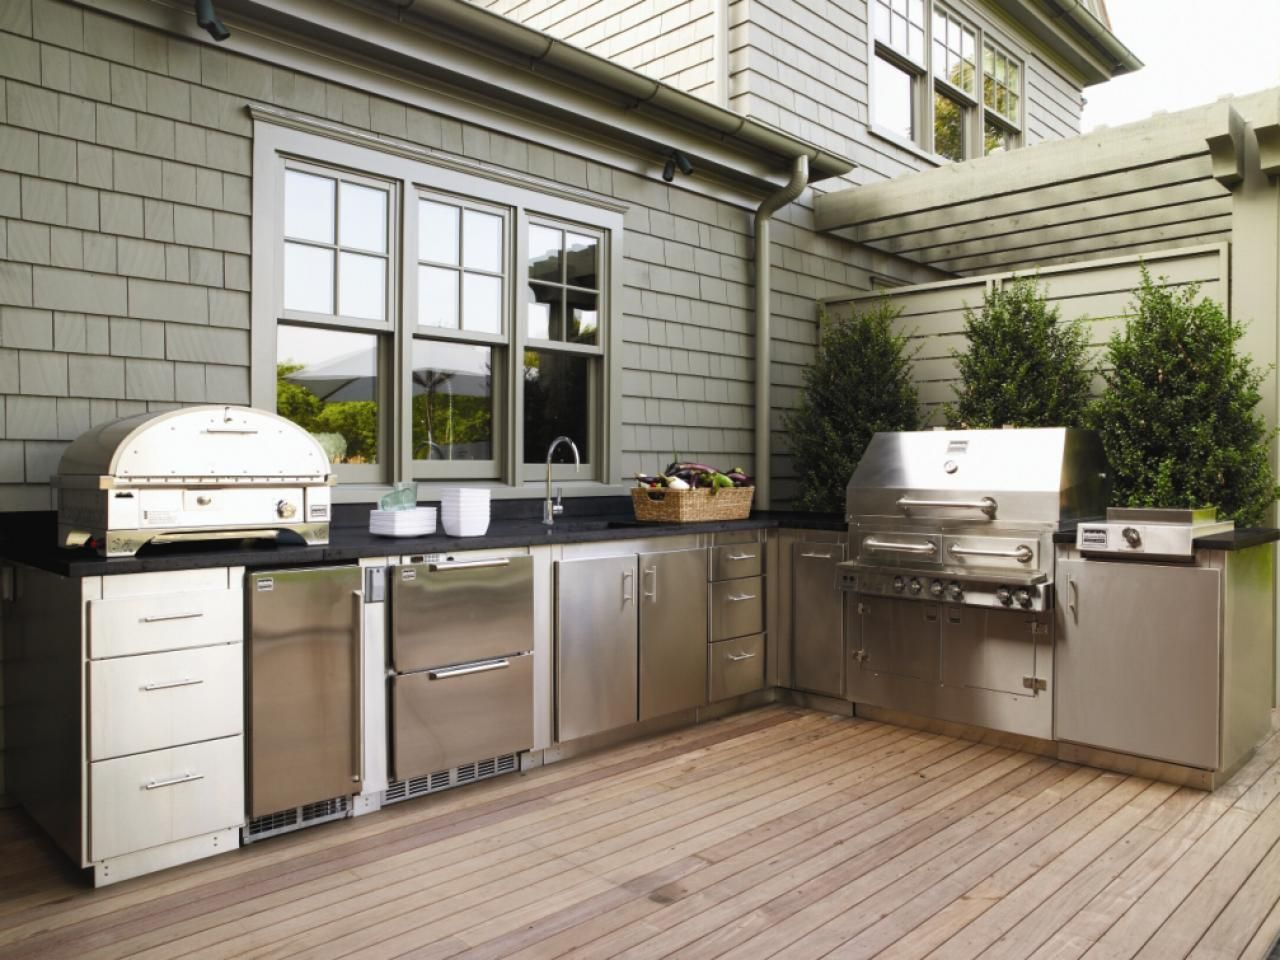 outdoor kitchen ideas on a budget pictures tips ideas outdoor kitchen plans diy outdoor on outdoor kitchen ideas on a budget id=40282